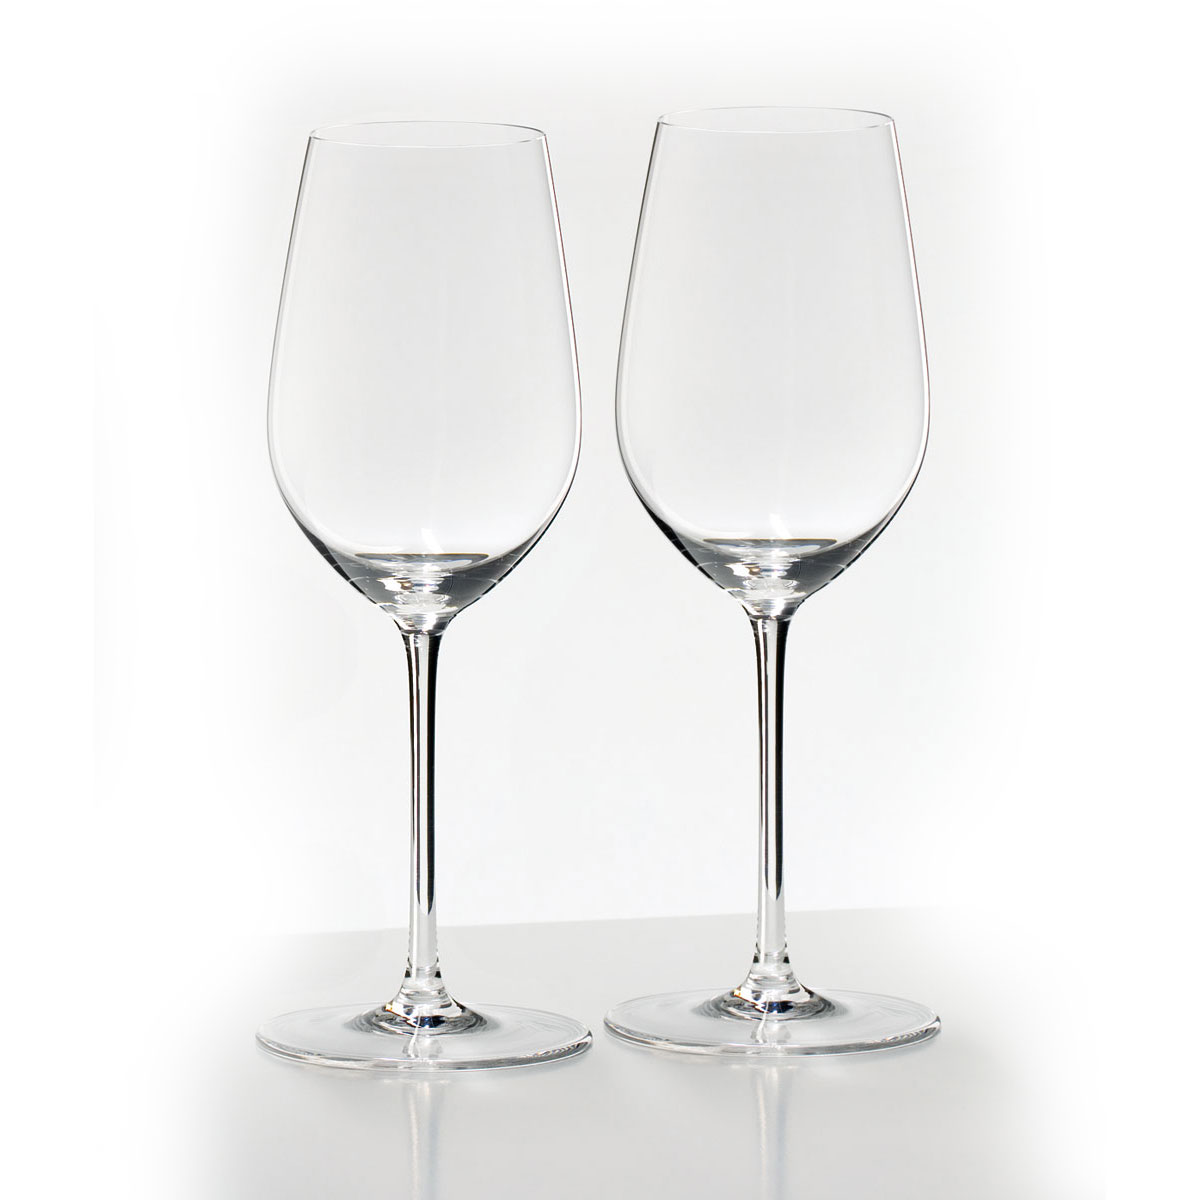 Riedel Sommeliers, Hand Made, Riesling Grand Cru Crystal Wine Glasses, Pair